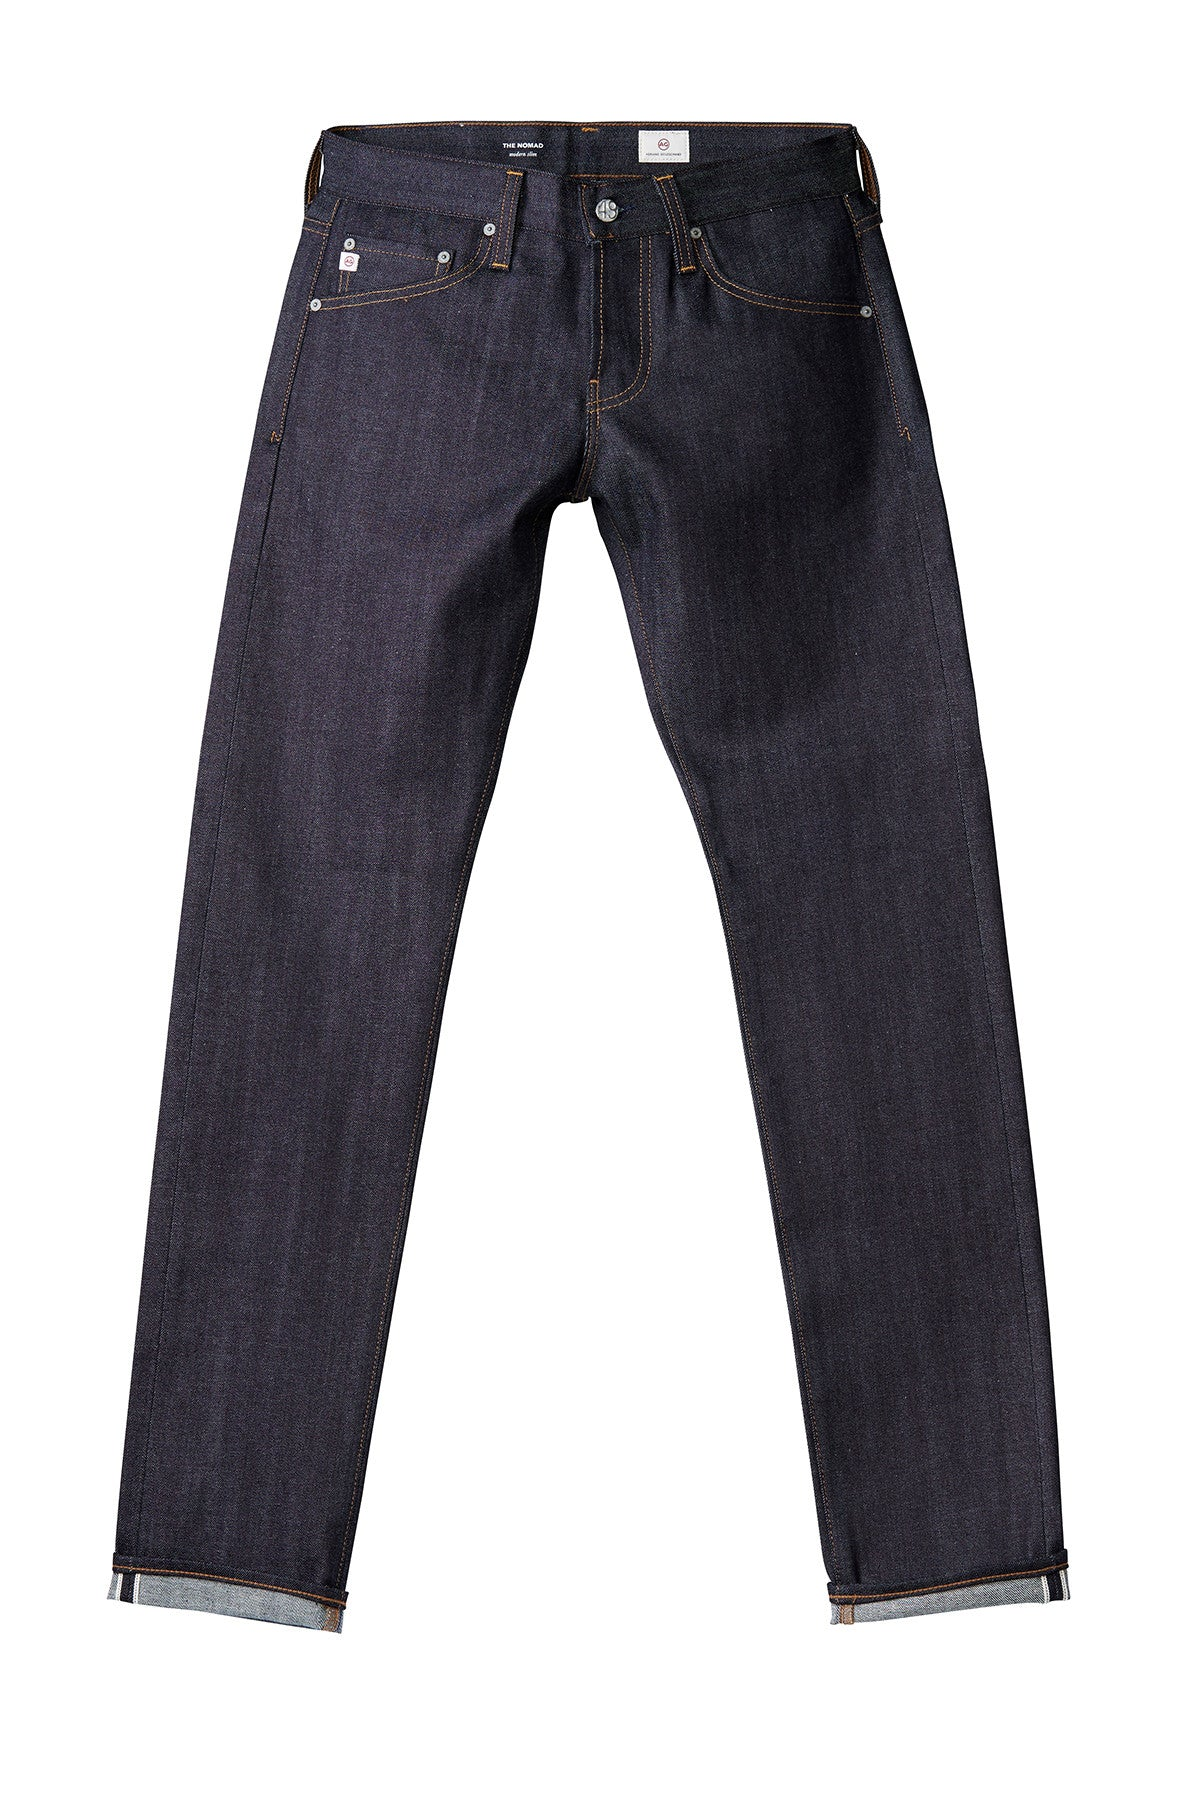 AG 'Nomad' Skinny Fit Jeans in Dark Stretch Selvedge (Signature)